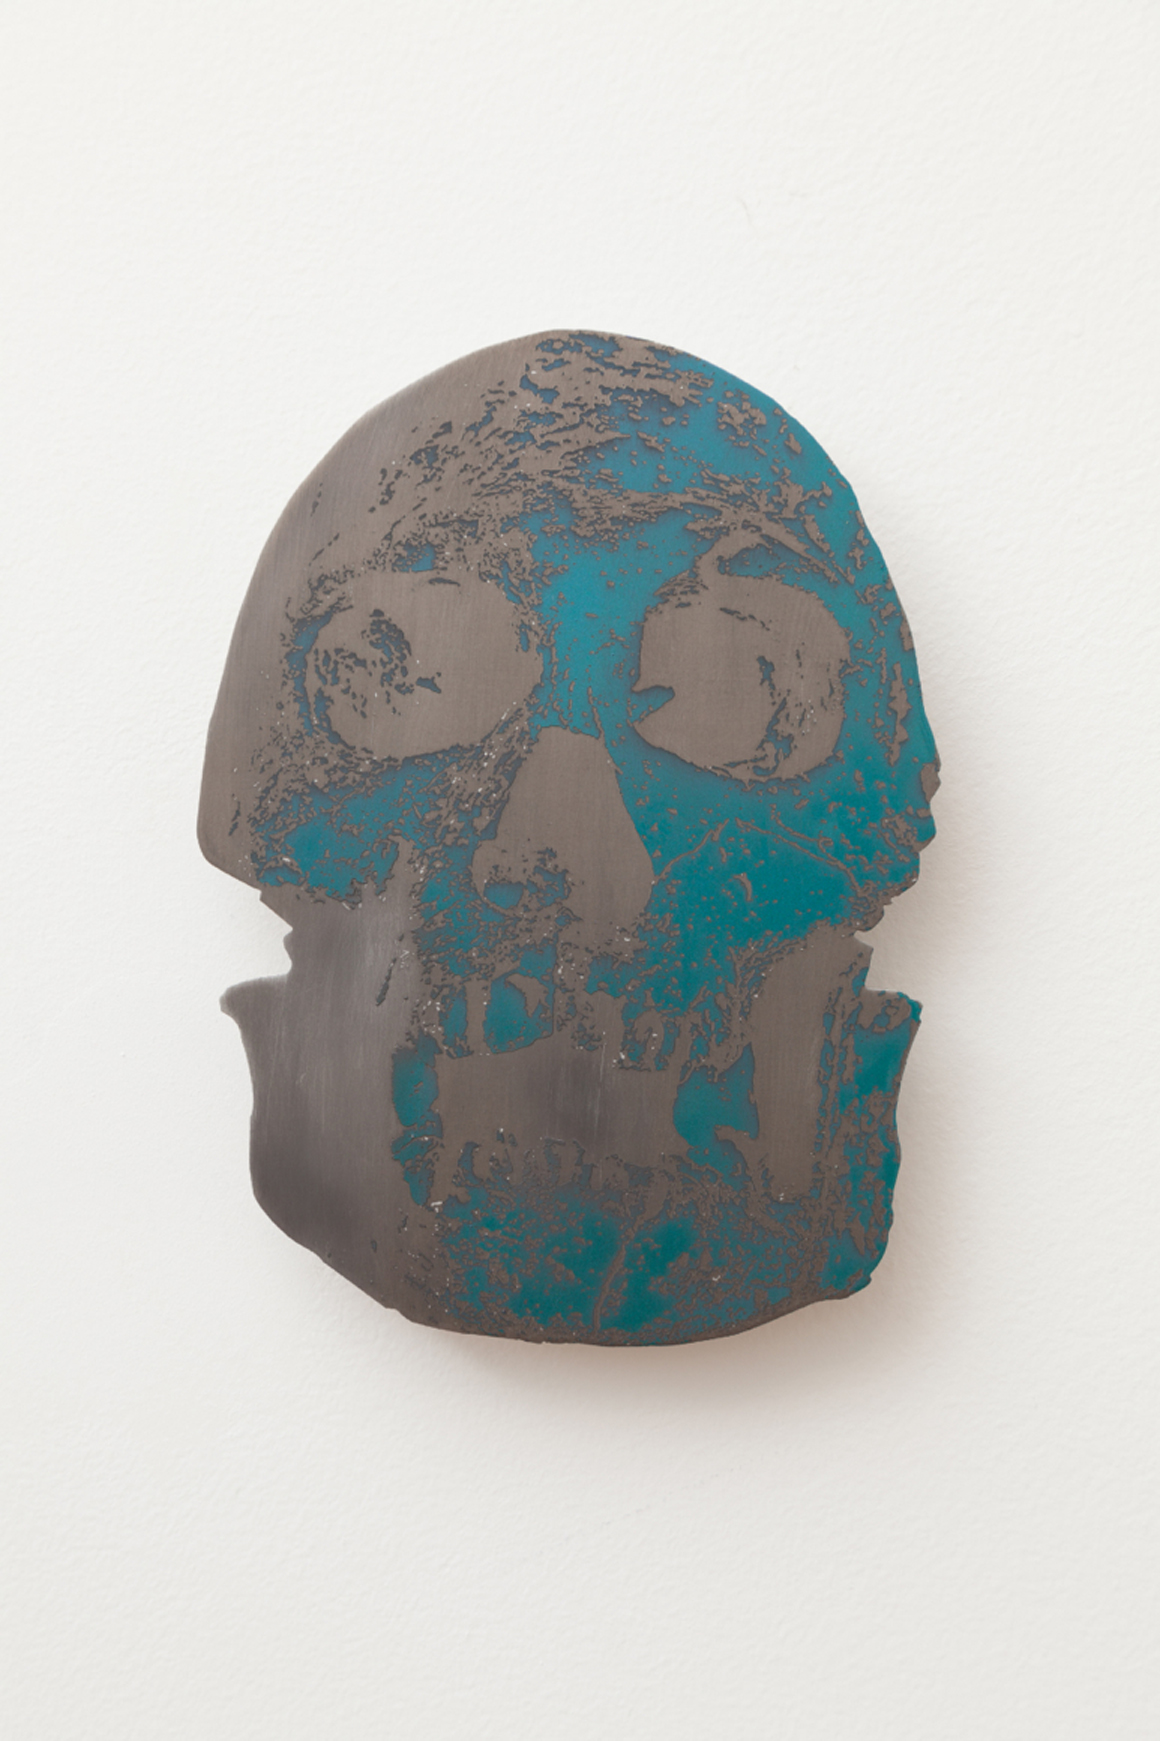 """<p><span class=""""name"""">Dmitri Obergfell</span><br><em>Dmanisi skull</em><span class='media'>laser etched interference paint on aluminum</span>9 x 6 3/4in<br>2014<br><a class='inquire' href='mailto:info@gildargallery.com?subject=Artwork Inquiry DOBE0010&body=I am interested in finding out more about Dmanisi skull by Dmitri Obergfell'>Inquire</a></p>"""